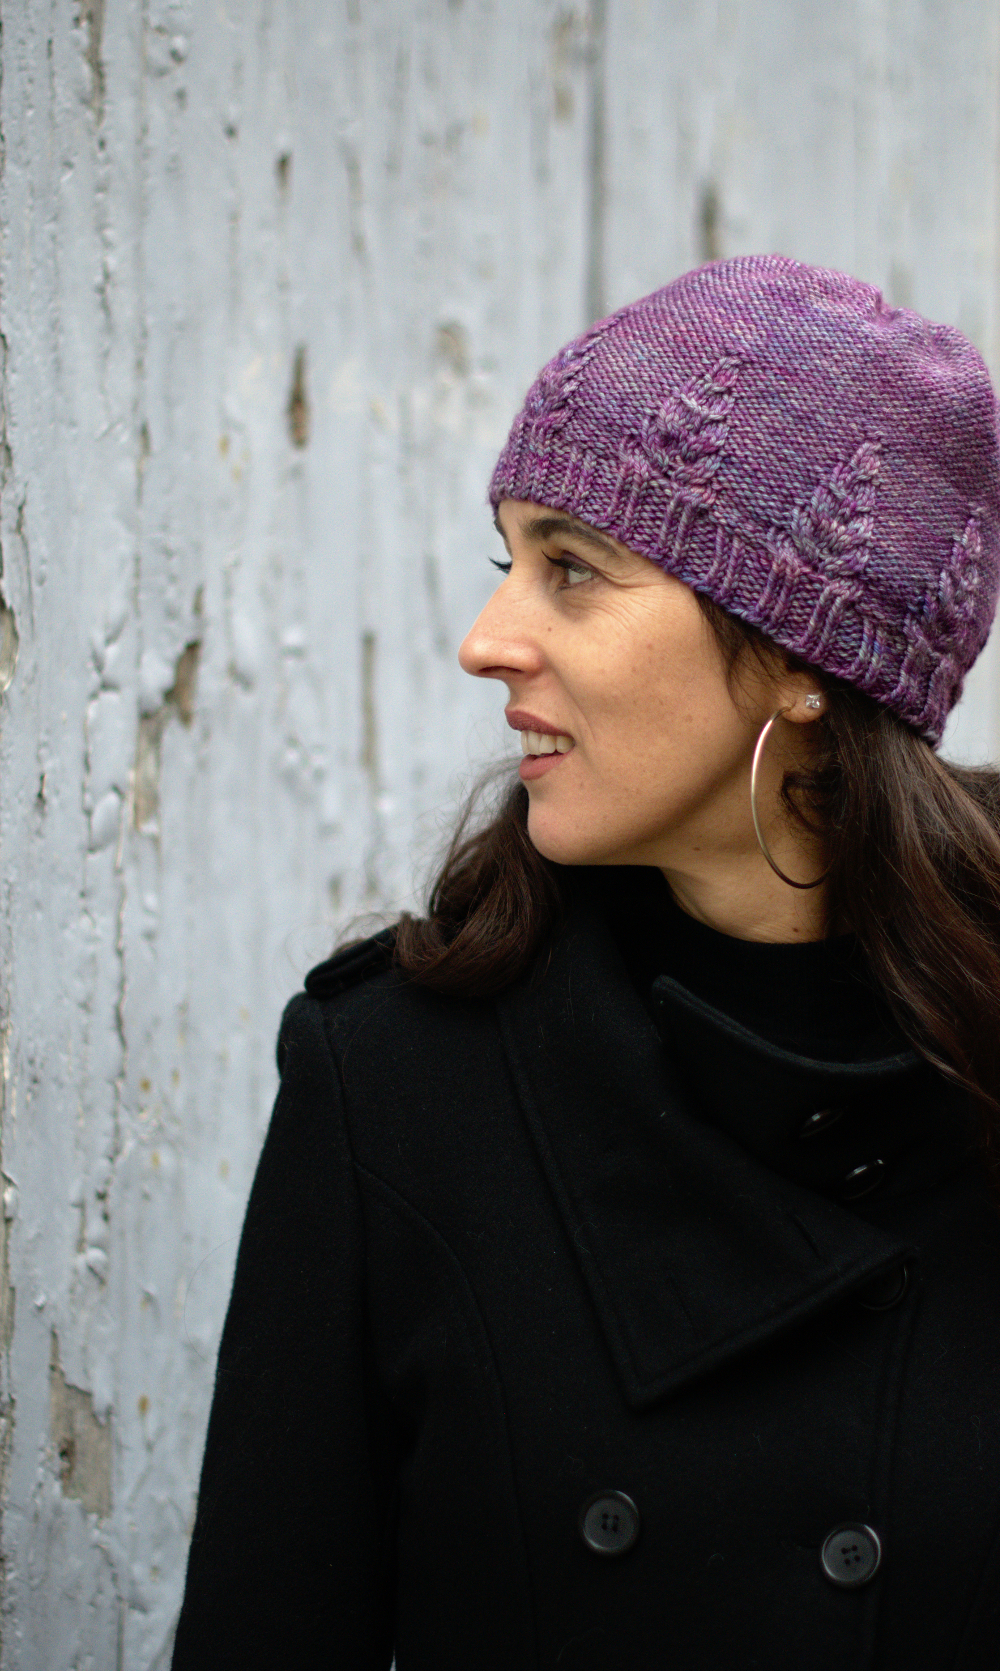 Armley Slouchy Hat hand knitting pattern for DK weight yarn